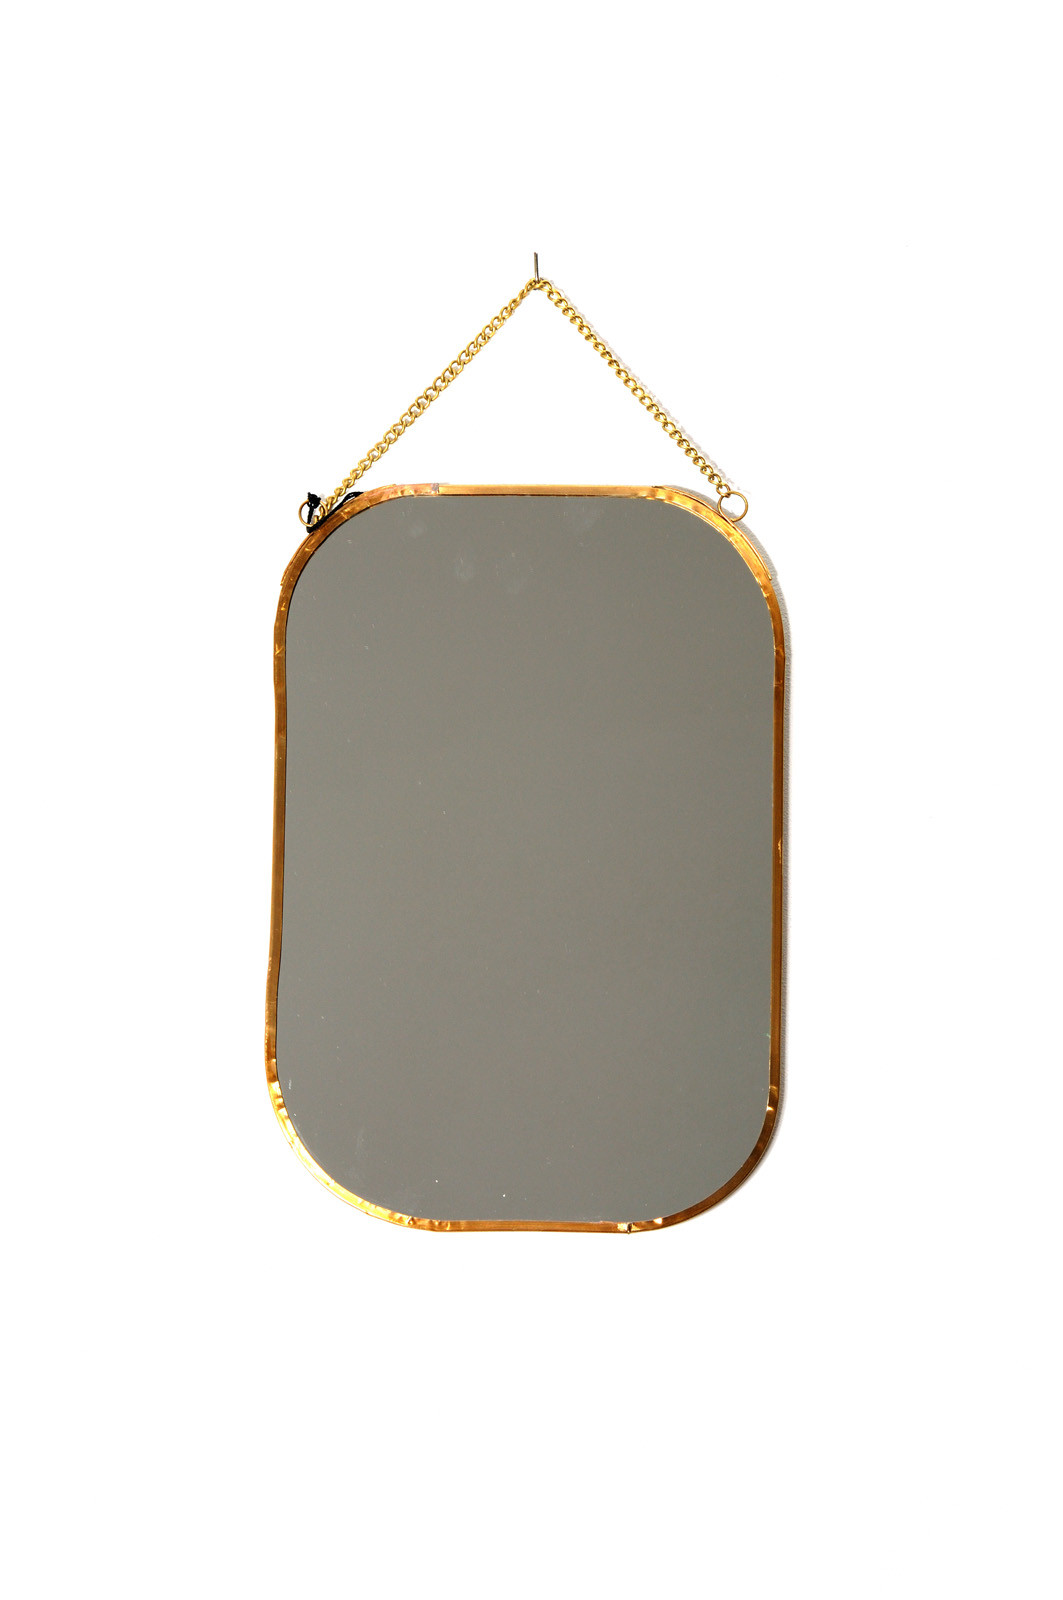 MIROIR GRAND RECTANGLE